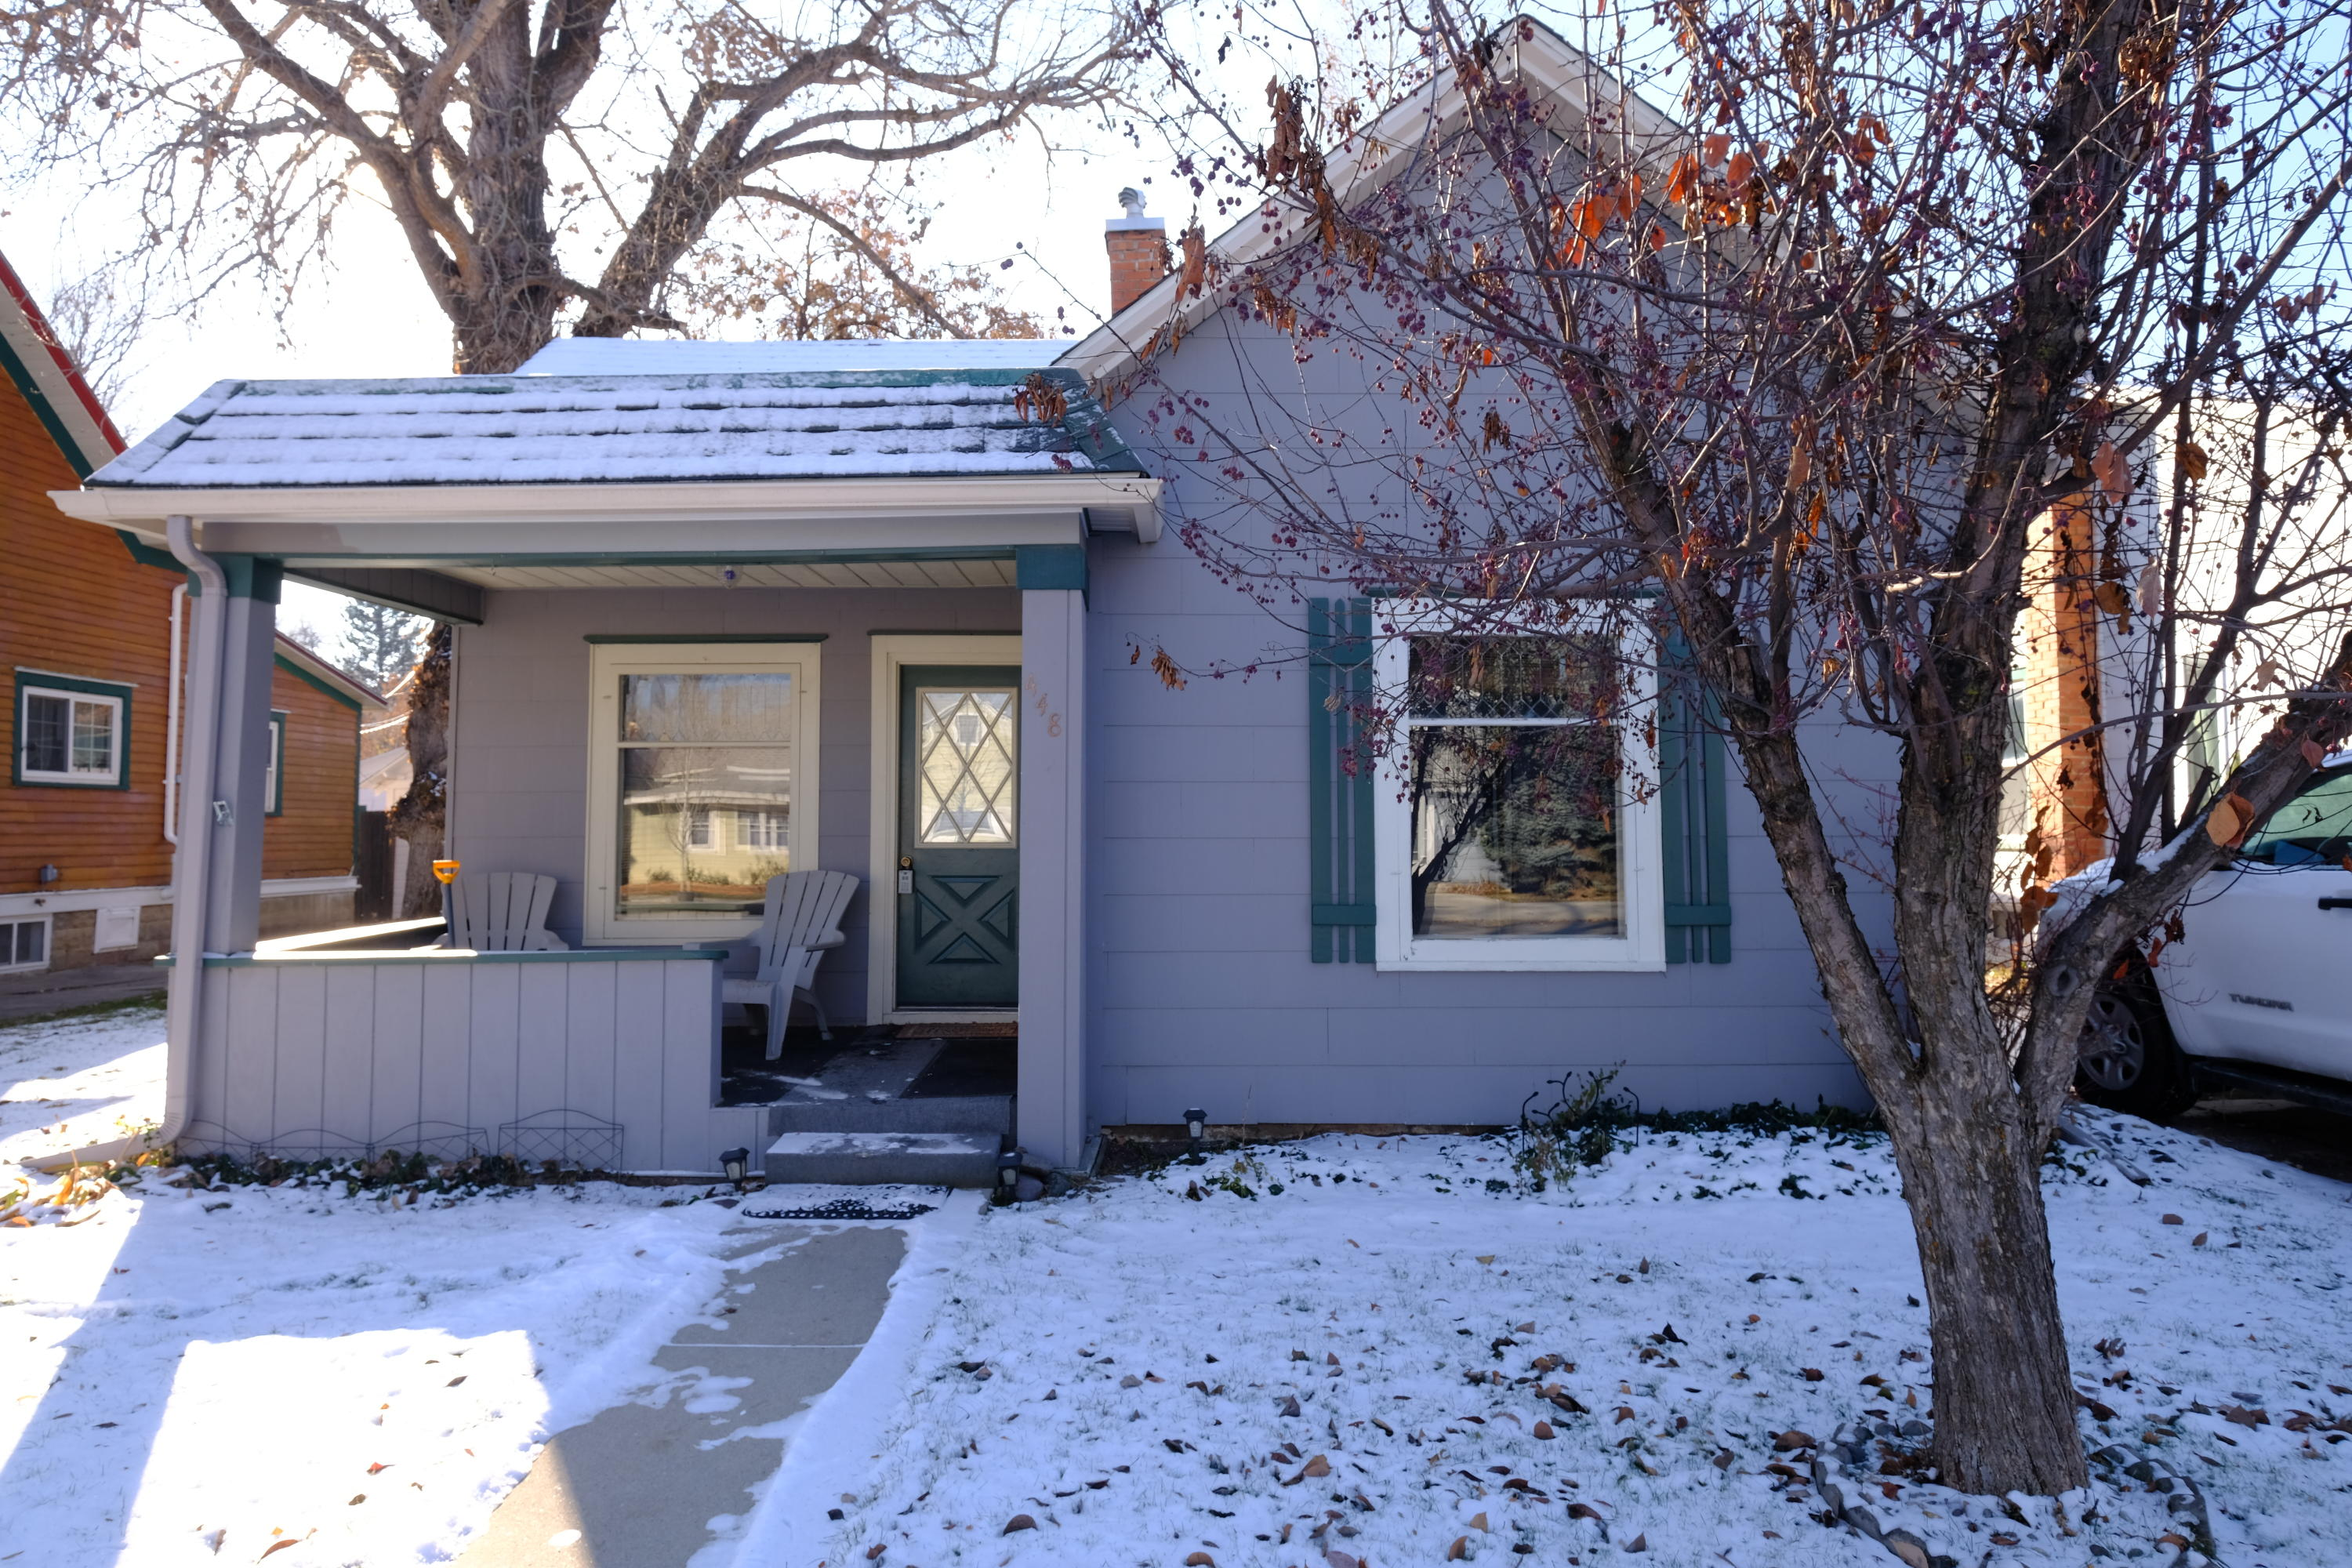 448 Burkitt Street, Sheridan, Wyoming 82801, 2 Bedrooms Bedrooms, ,1 BathroomBathrooms,Residential,For Sale,Burkitt,18-1170